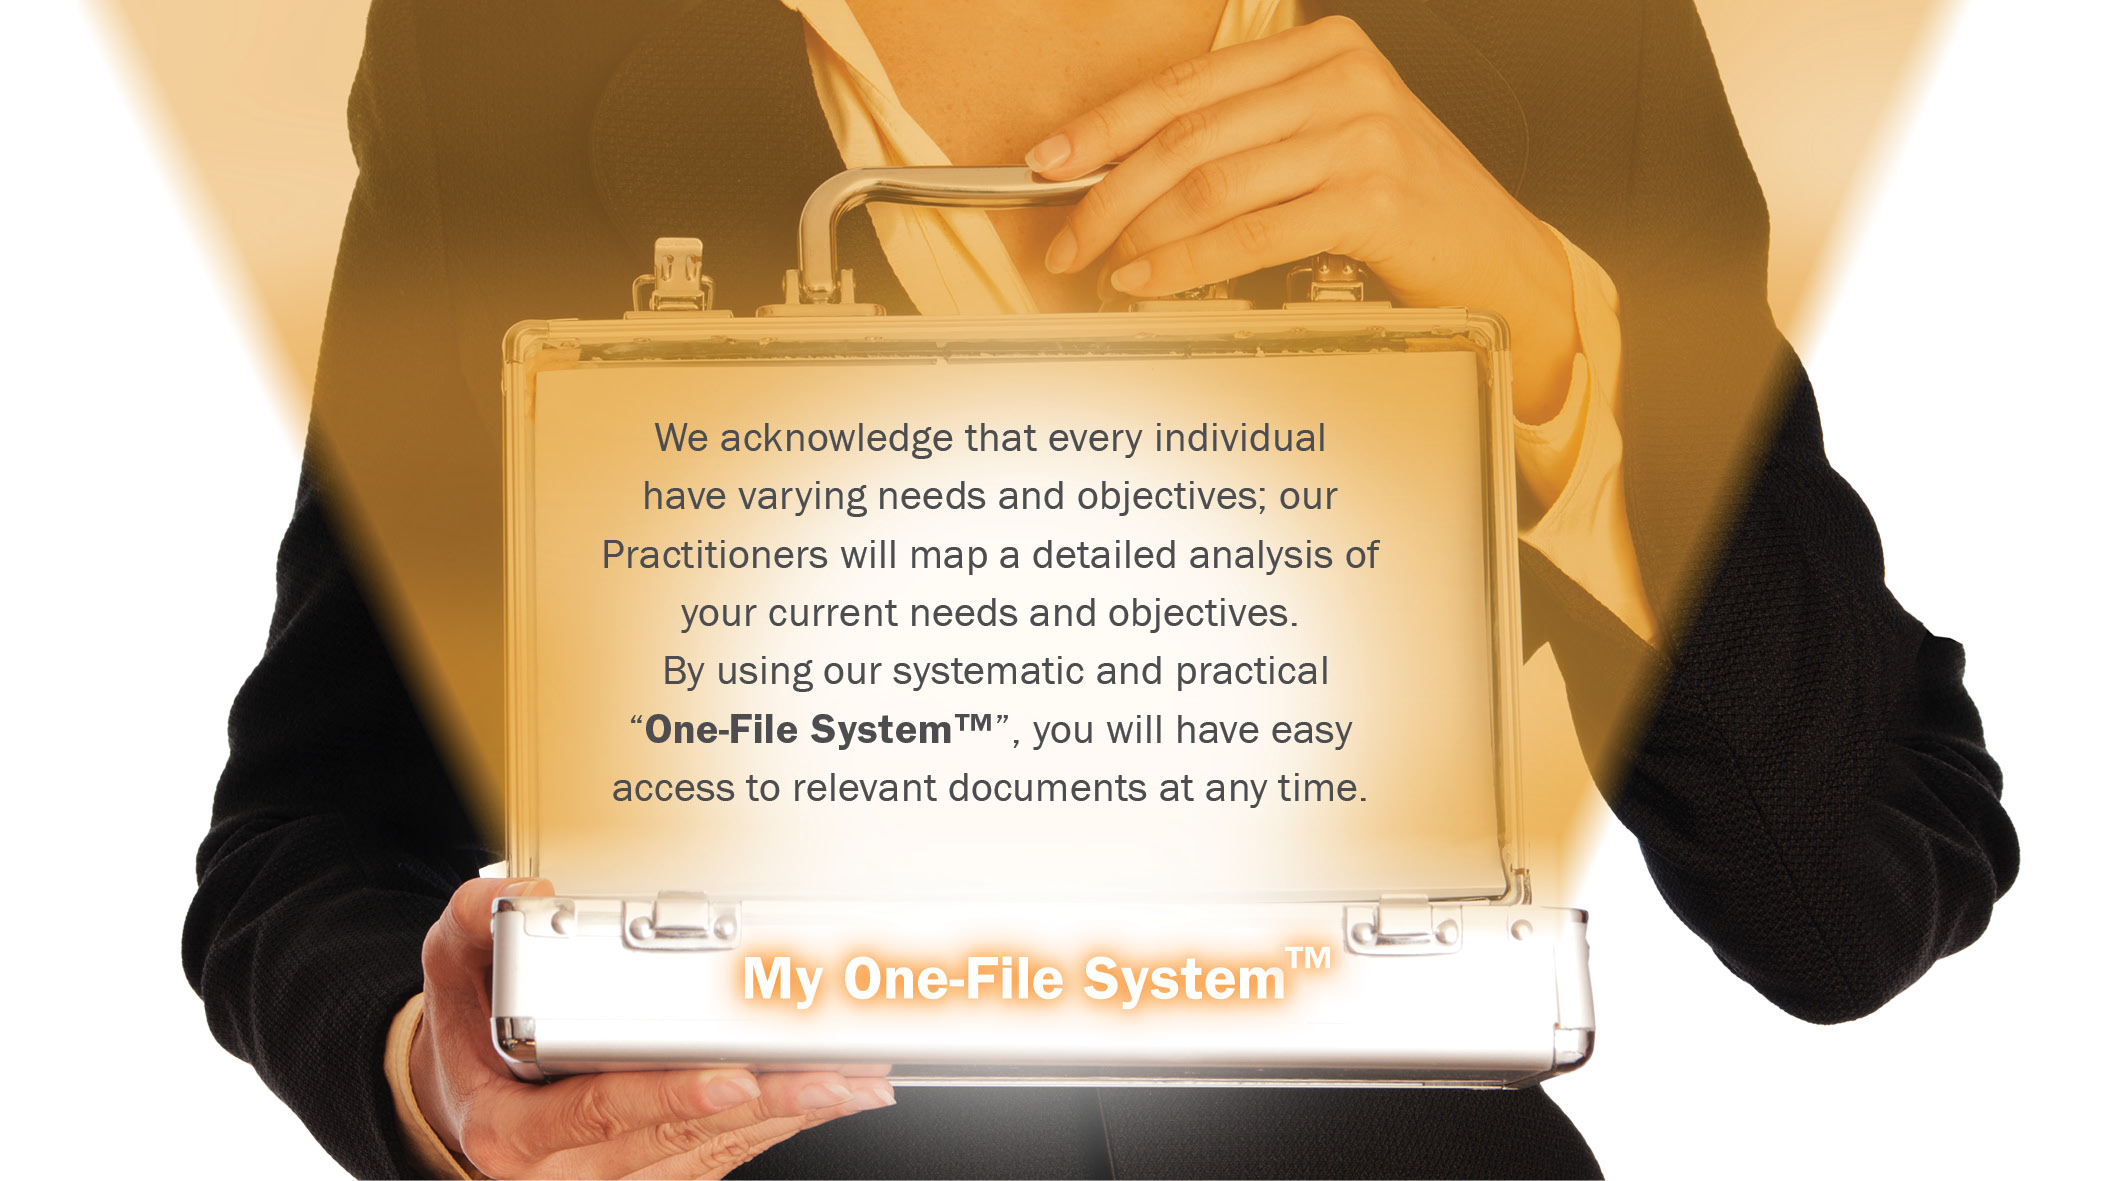 One file system